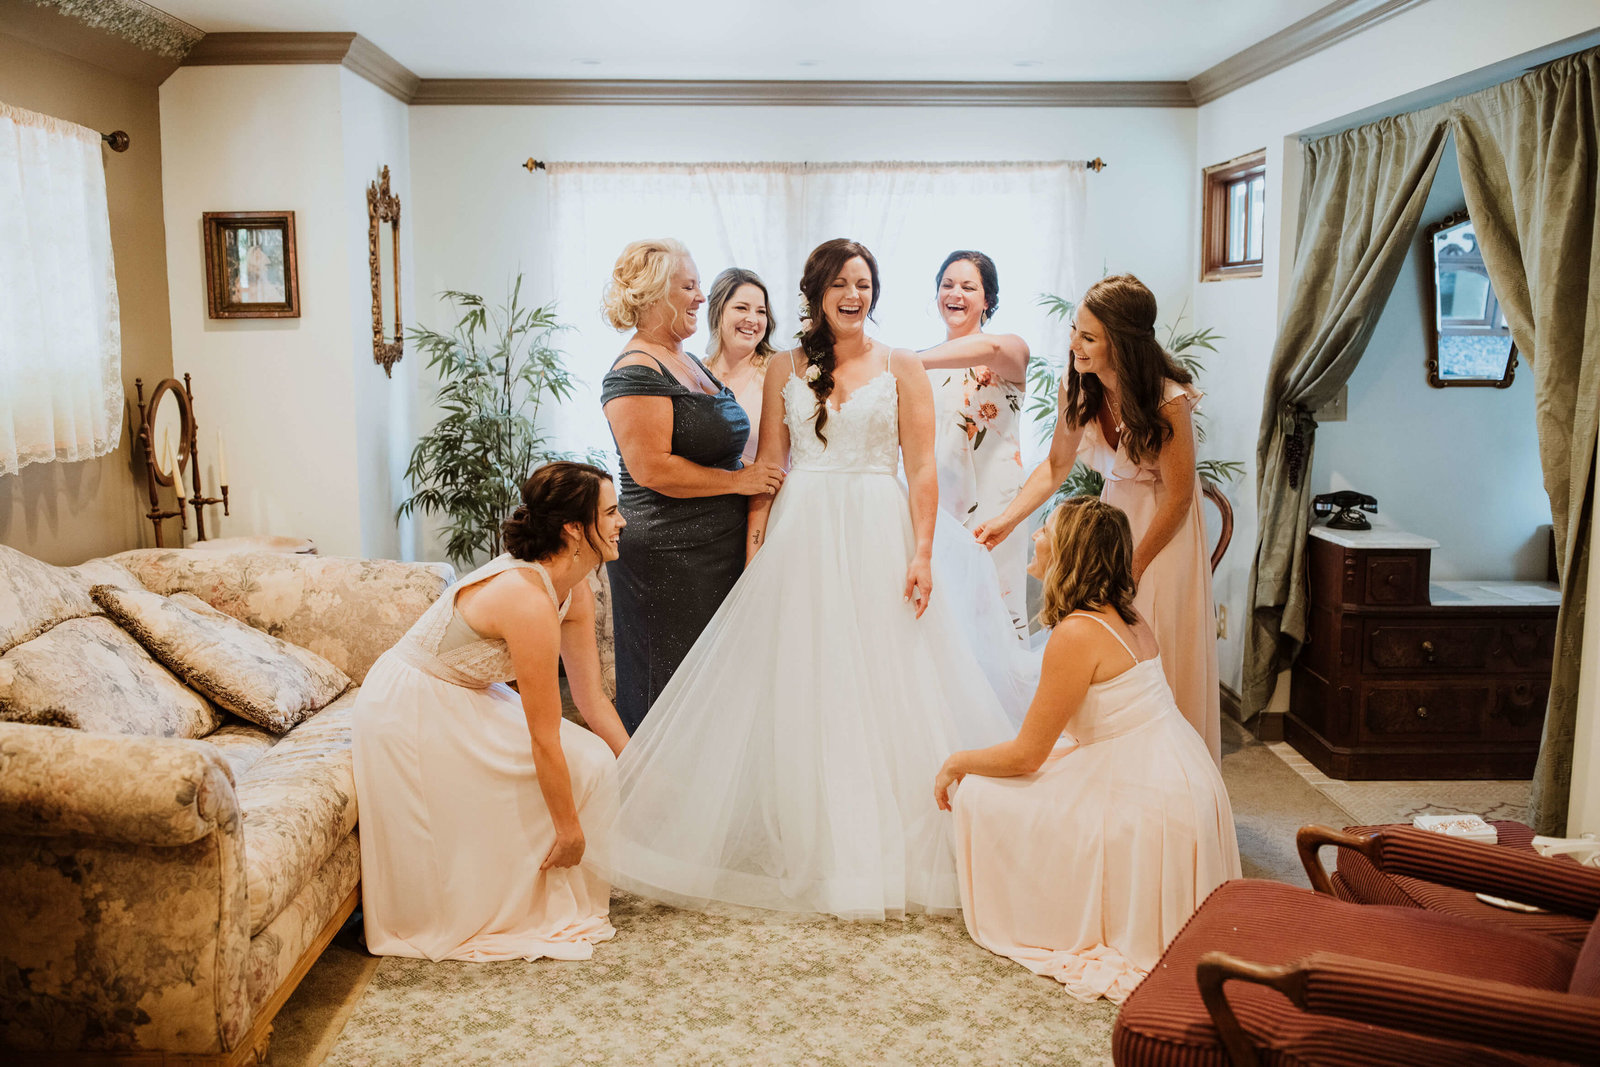 bridesmaid-photos-by-adina-preston-photography16